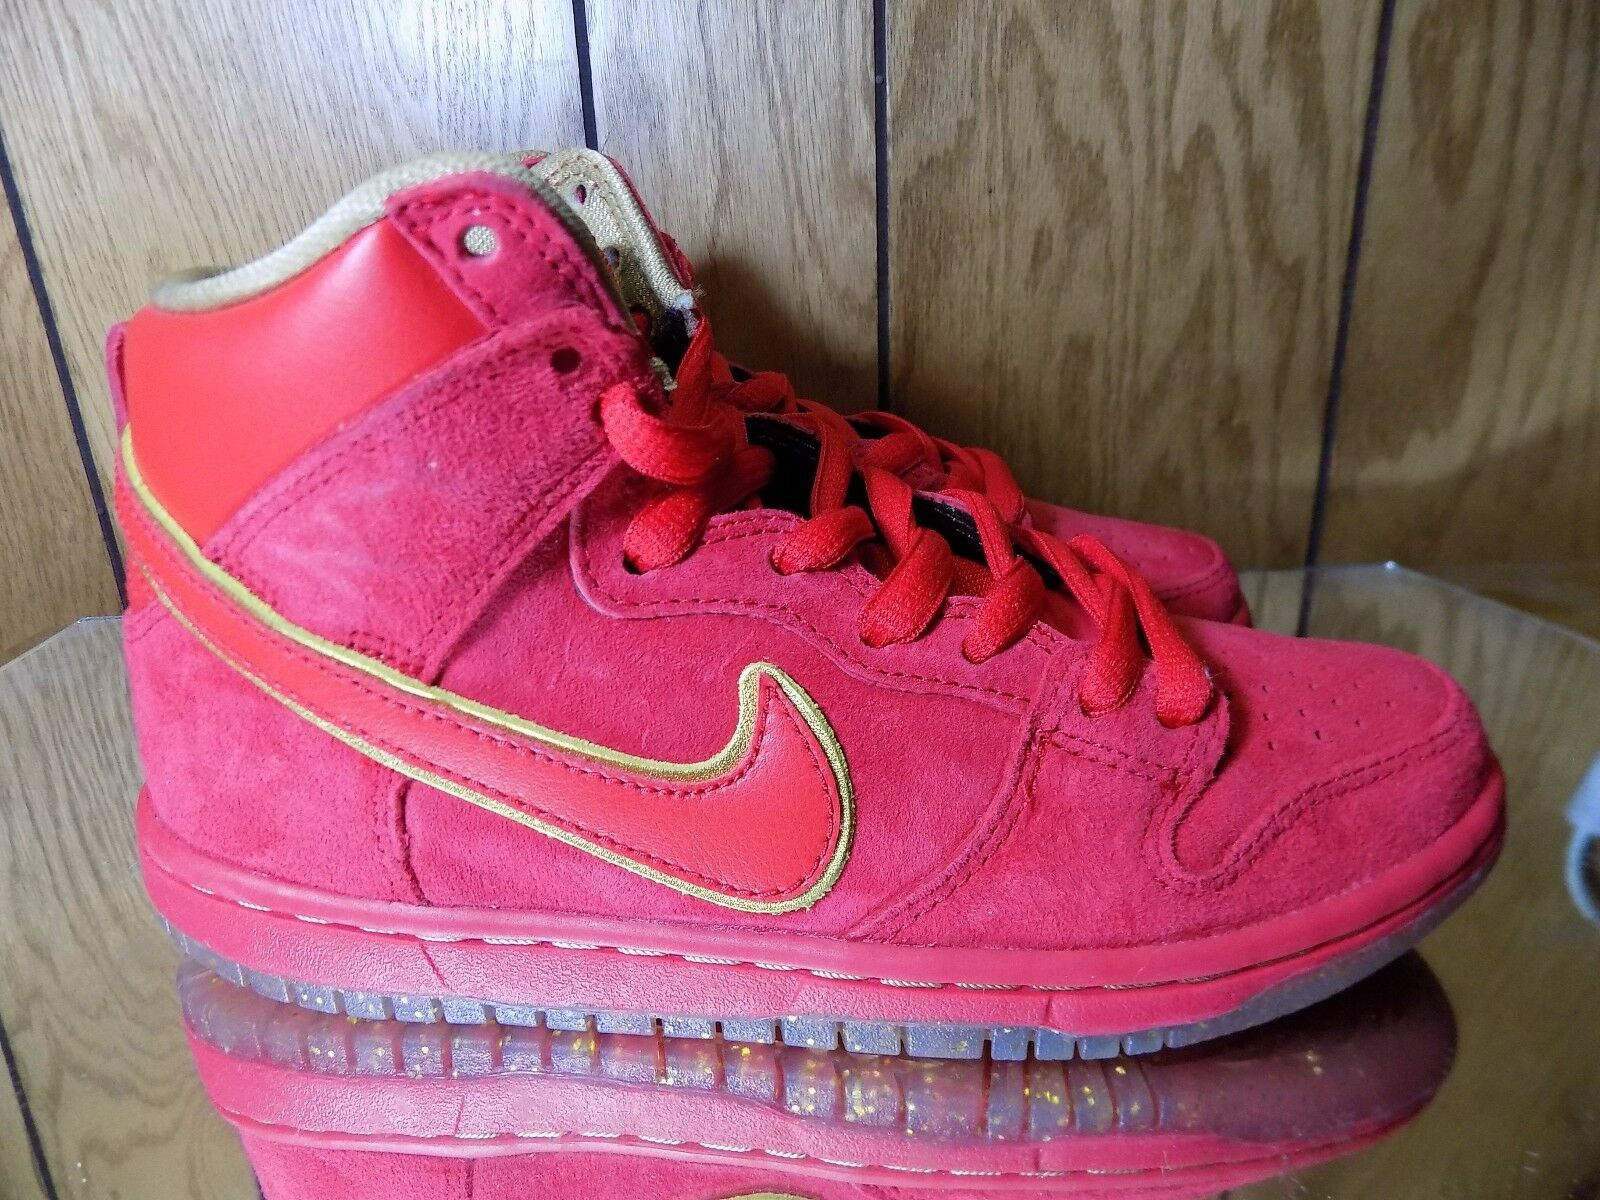 Nike Dunk High Premium SB CHINESE NEW YEAR CNY YEAR OF THE HORSE YOTH 8.5 The most popular shoes for men and women